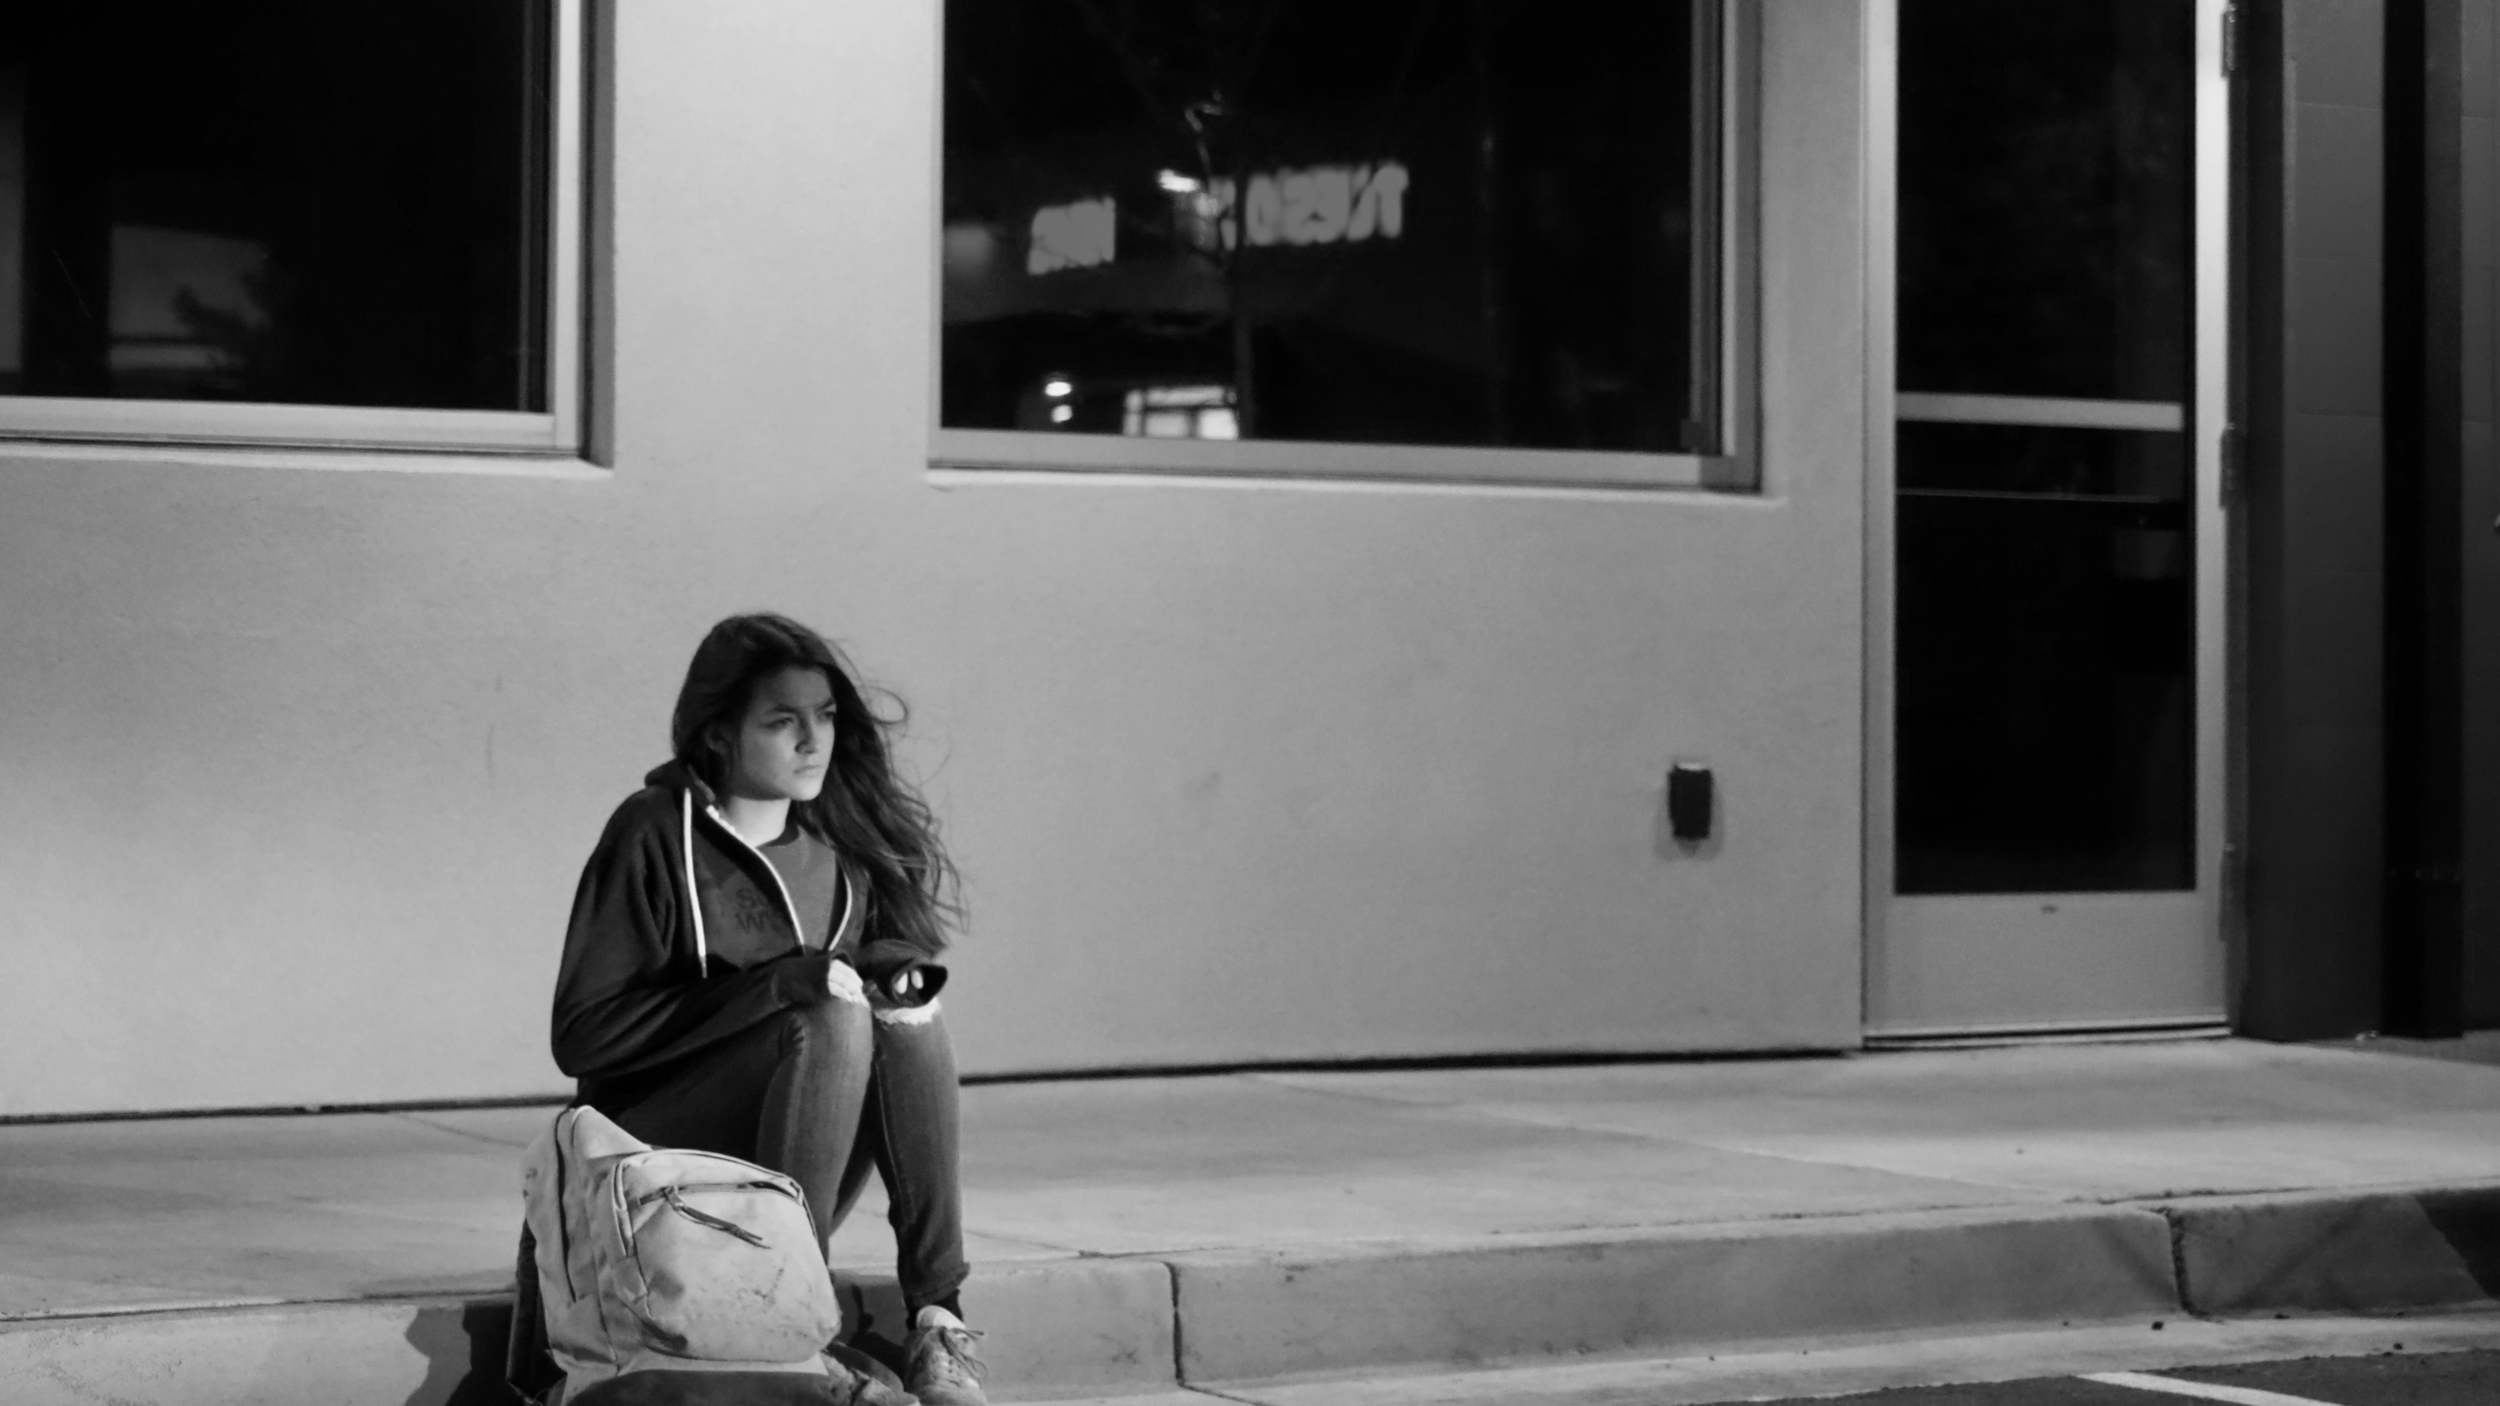 HIDDEN CRISIS   Albuquerque has more than 5000 homeless youth on any given night. These youth have few resources and many barriers to services which causes them to be extremely vulnerable to sex and drug traffickers.